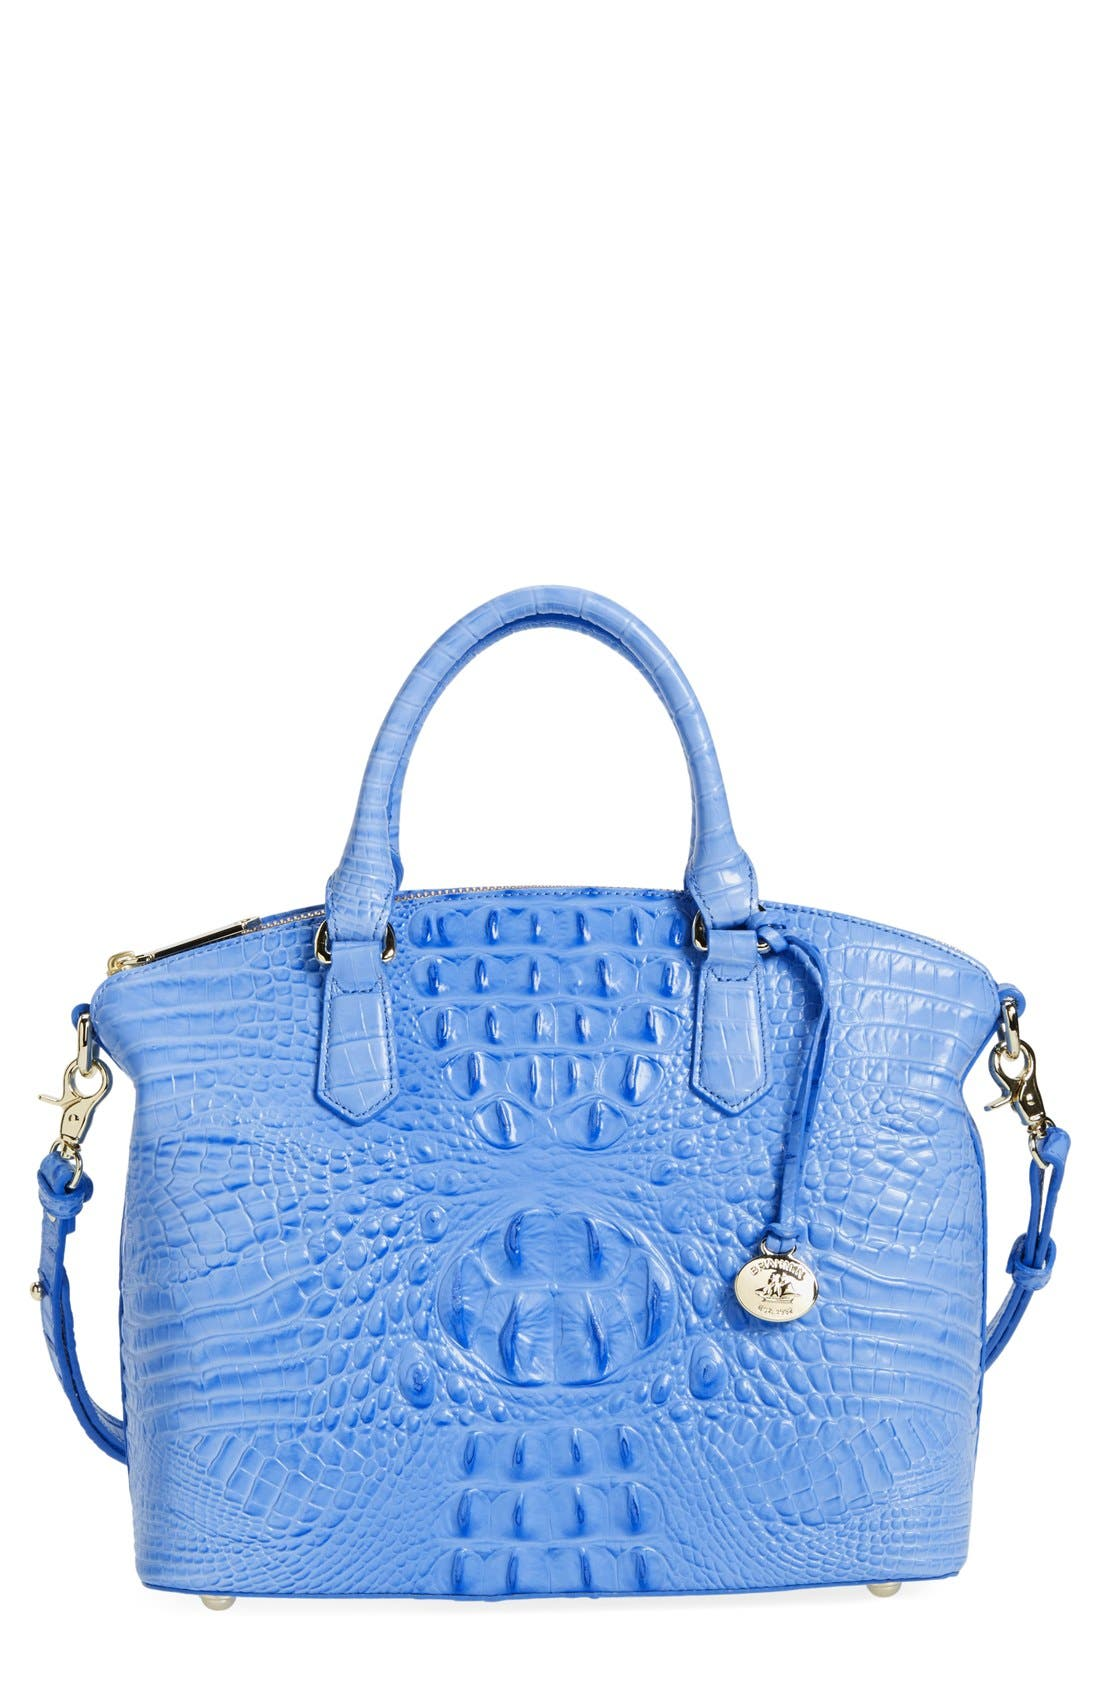 'Medium Duxbury' Croc Embossed Leather Satchel,                             Main thumbnail 17, color,